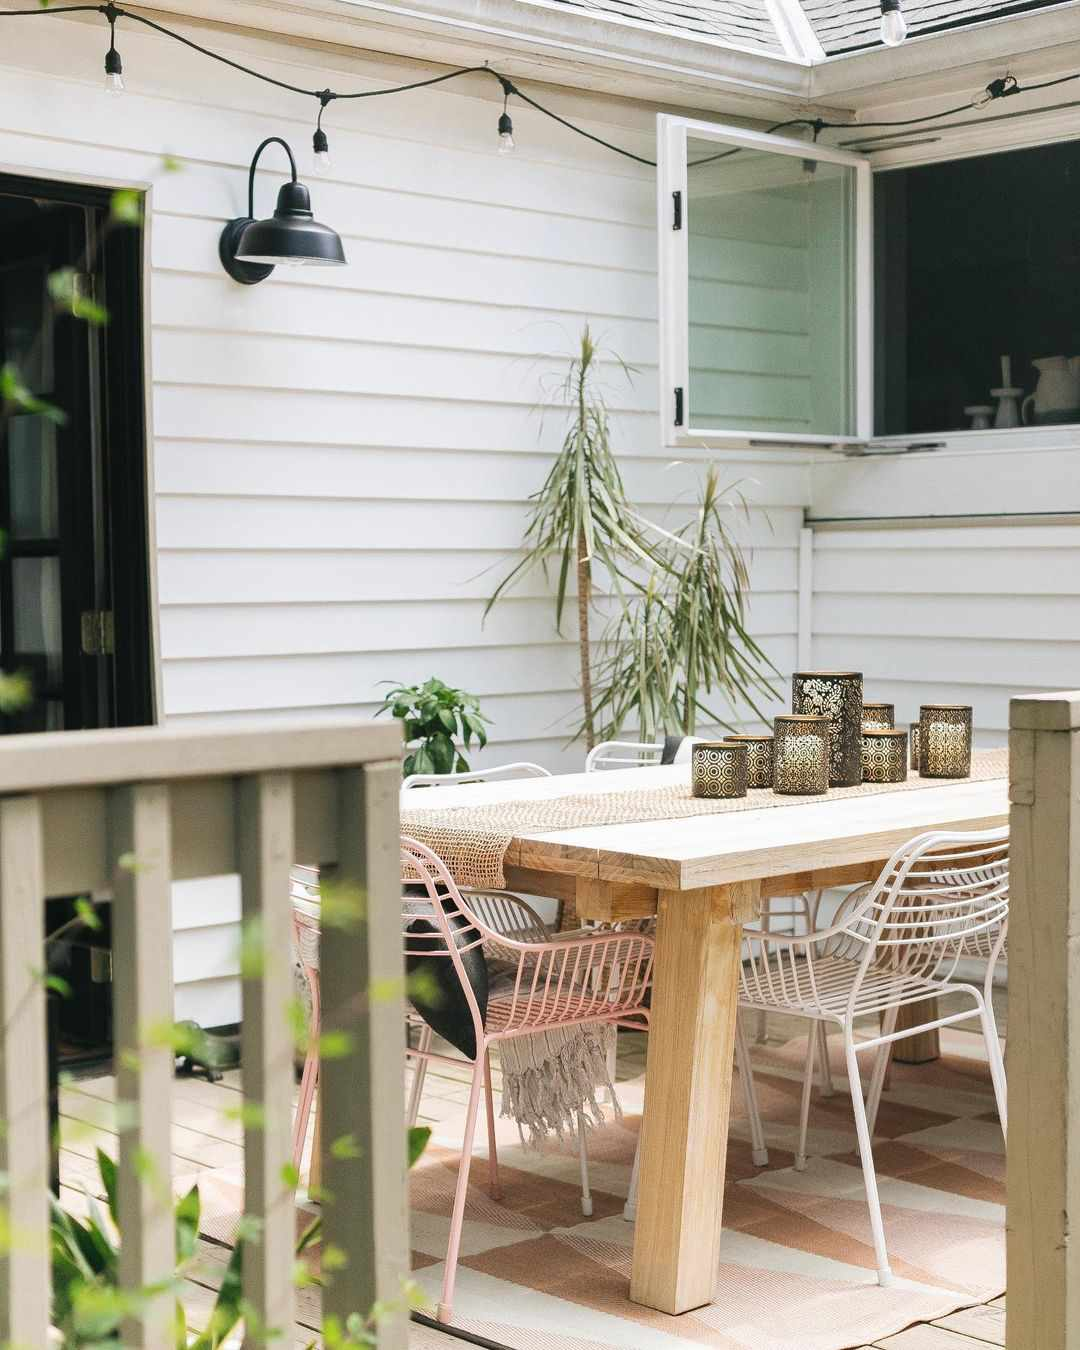 Outdoor patio with a dining table